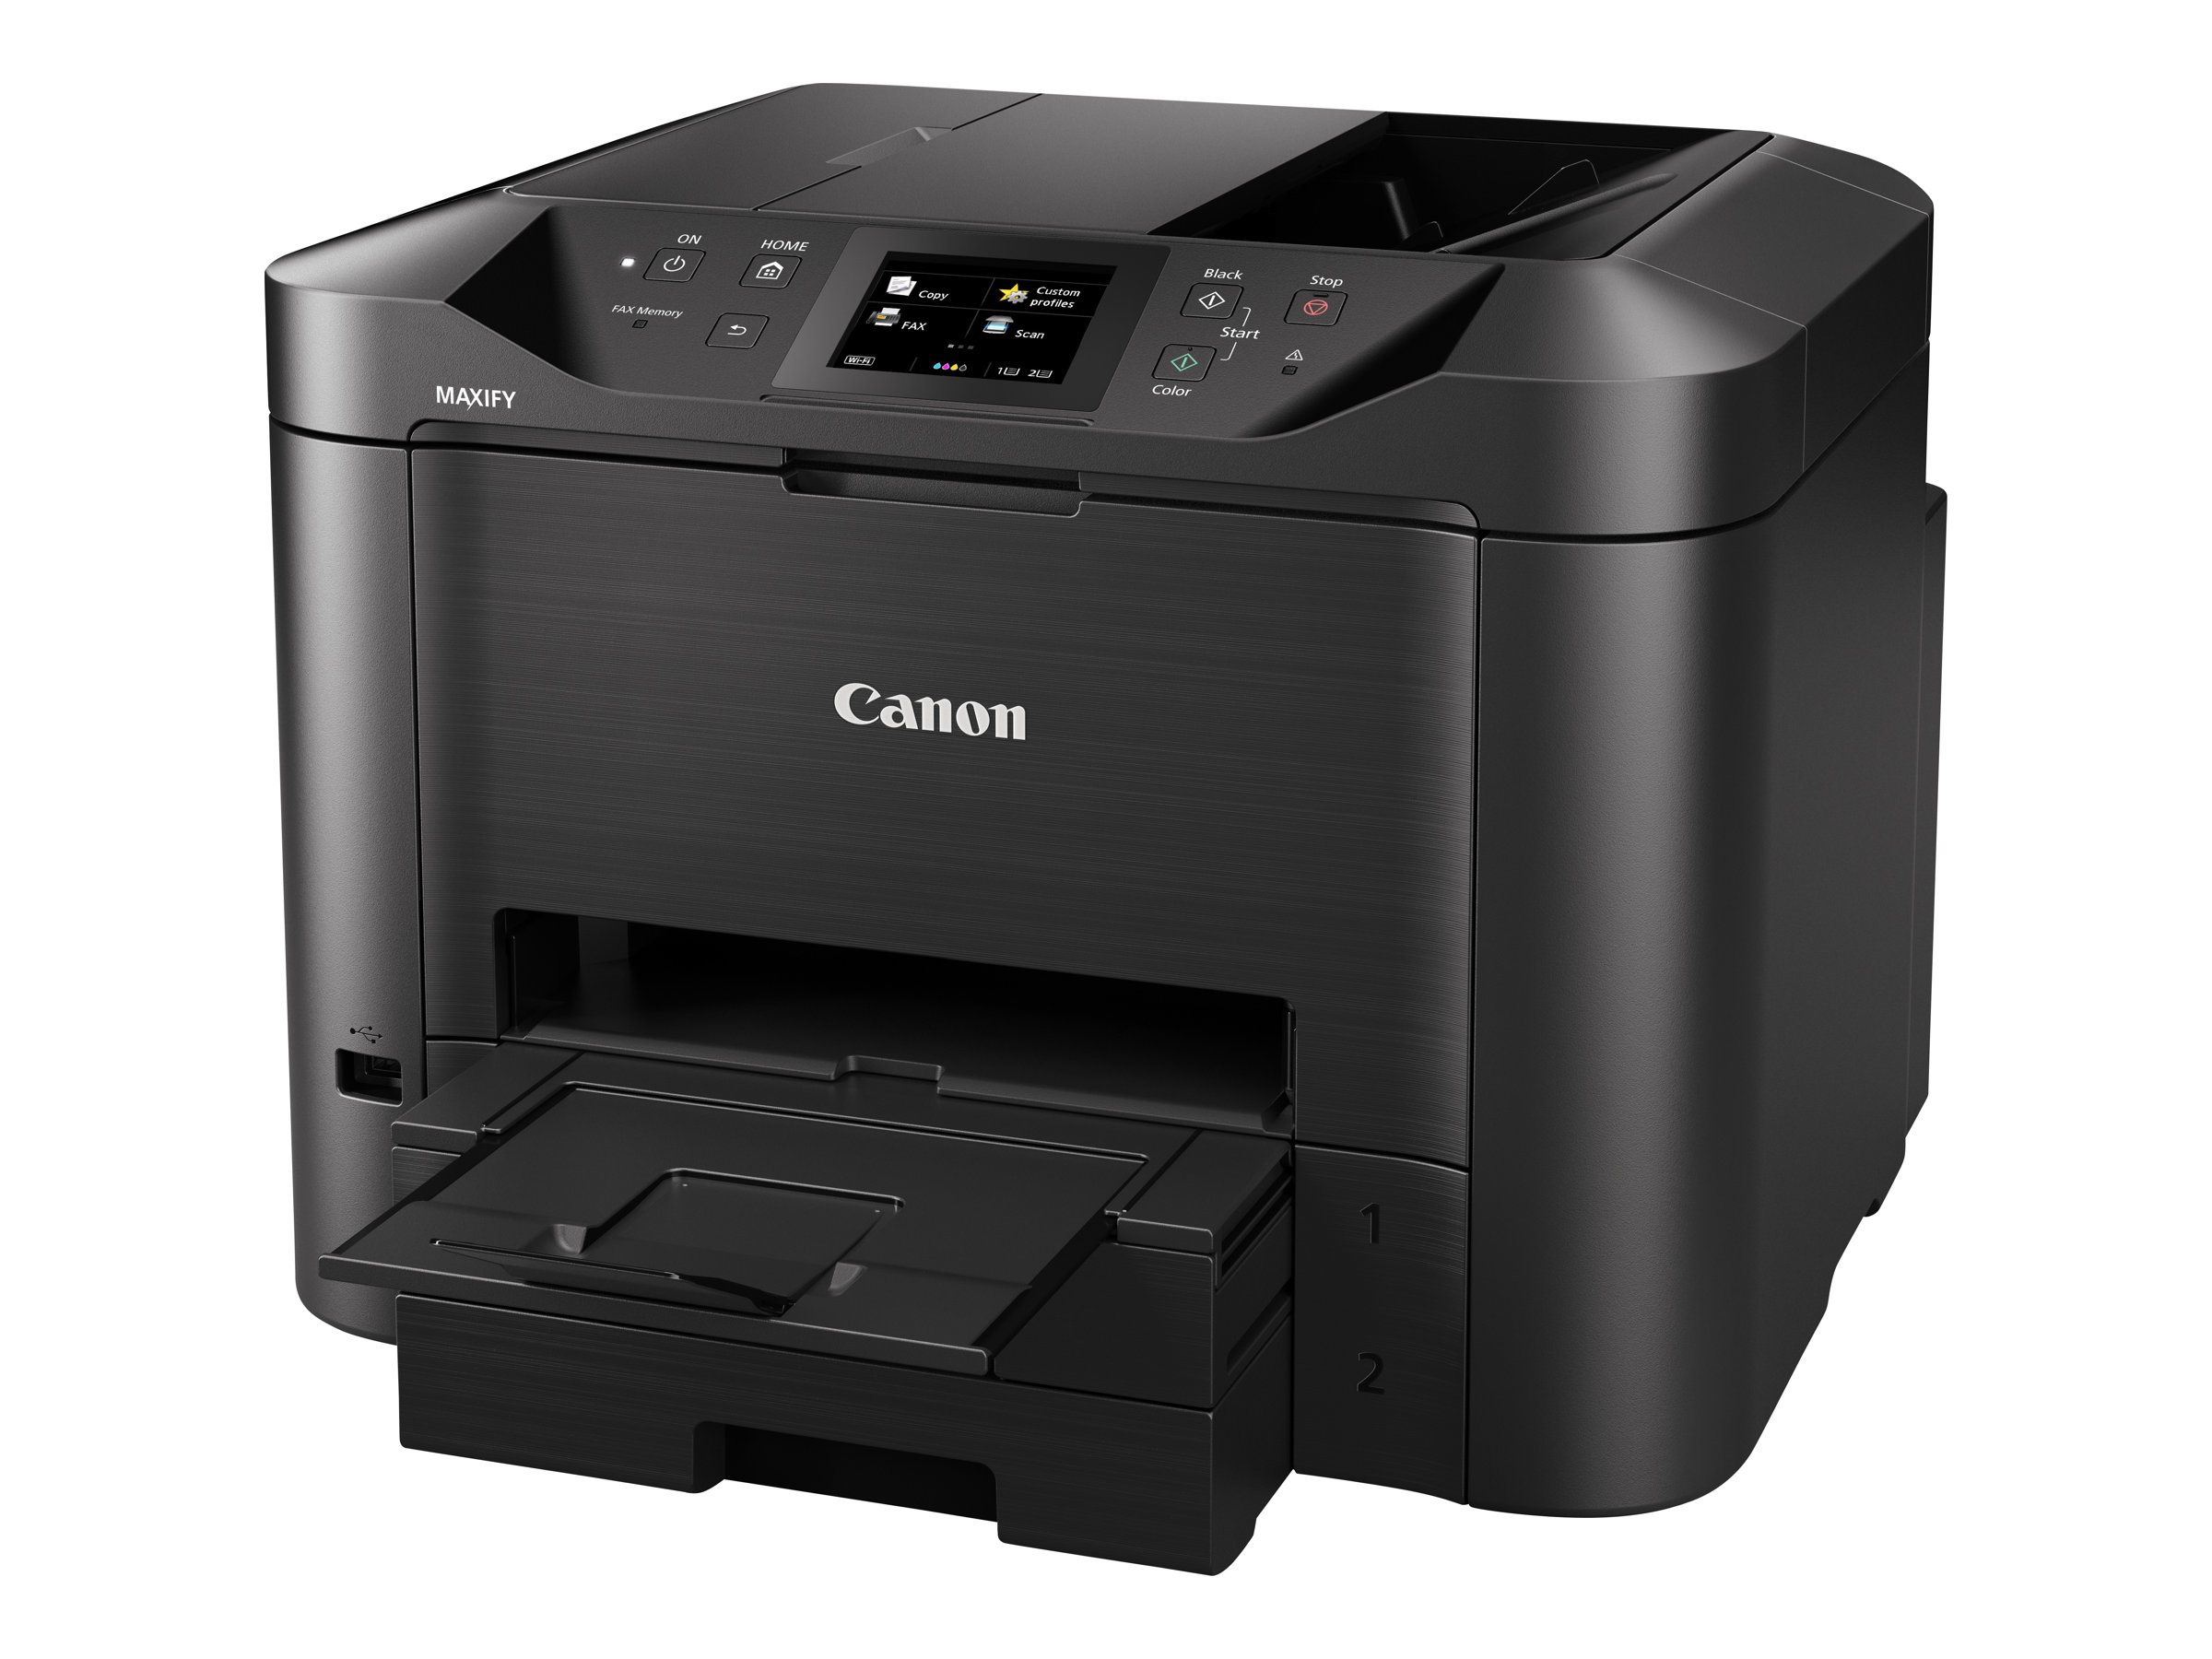 Canon MAXIFY MB5450 - Multifunktionsdrucker - Farbe - Tintenstrahl - A4 (210 x 297 mm)